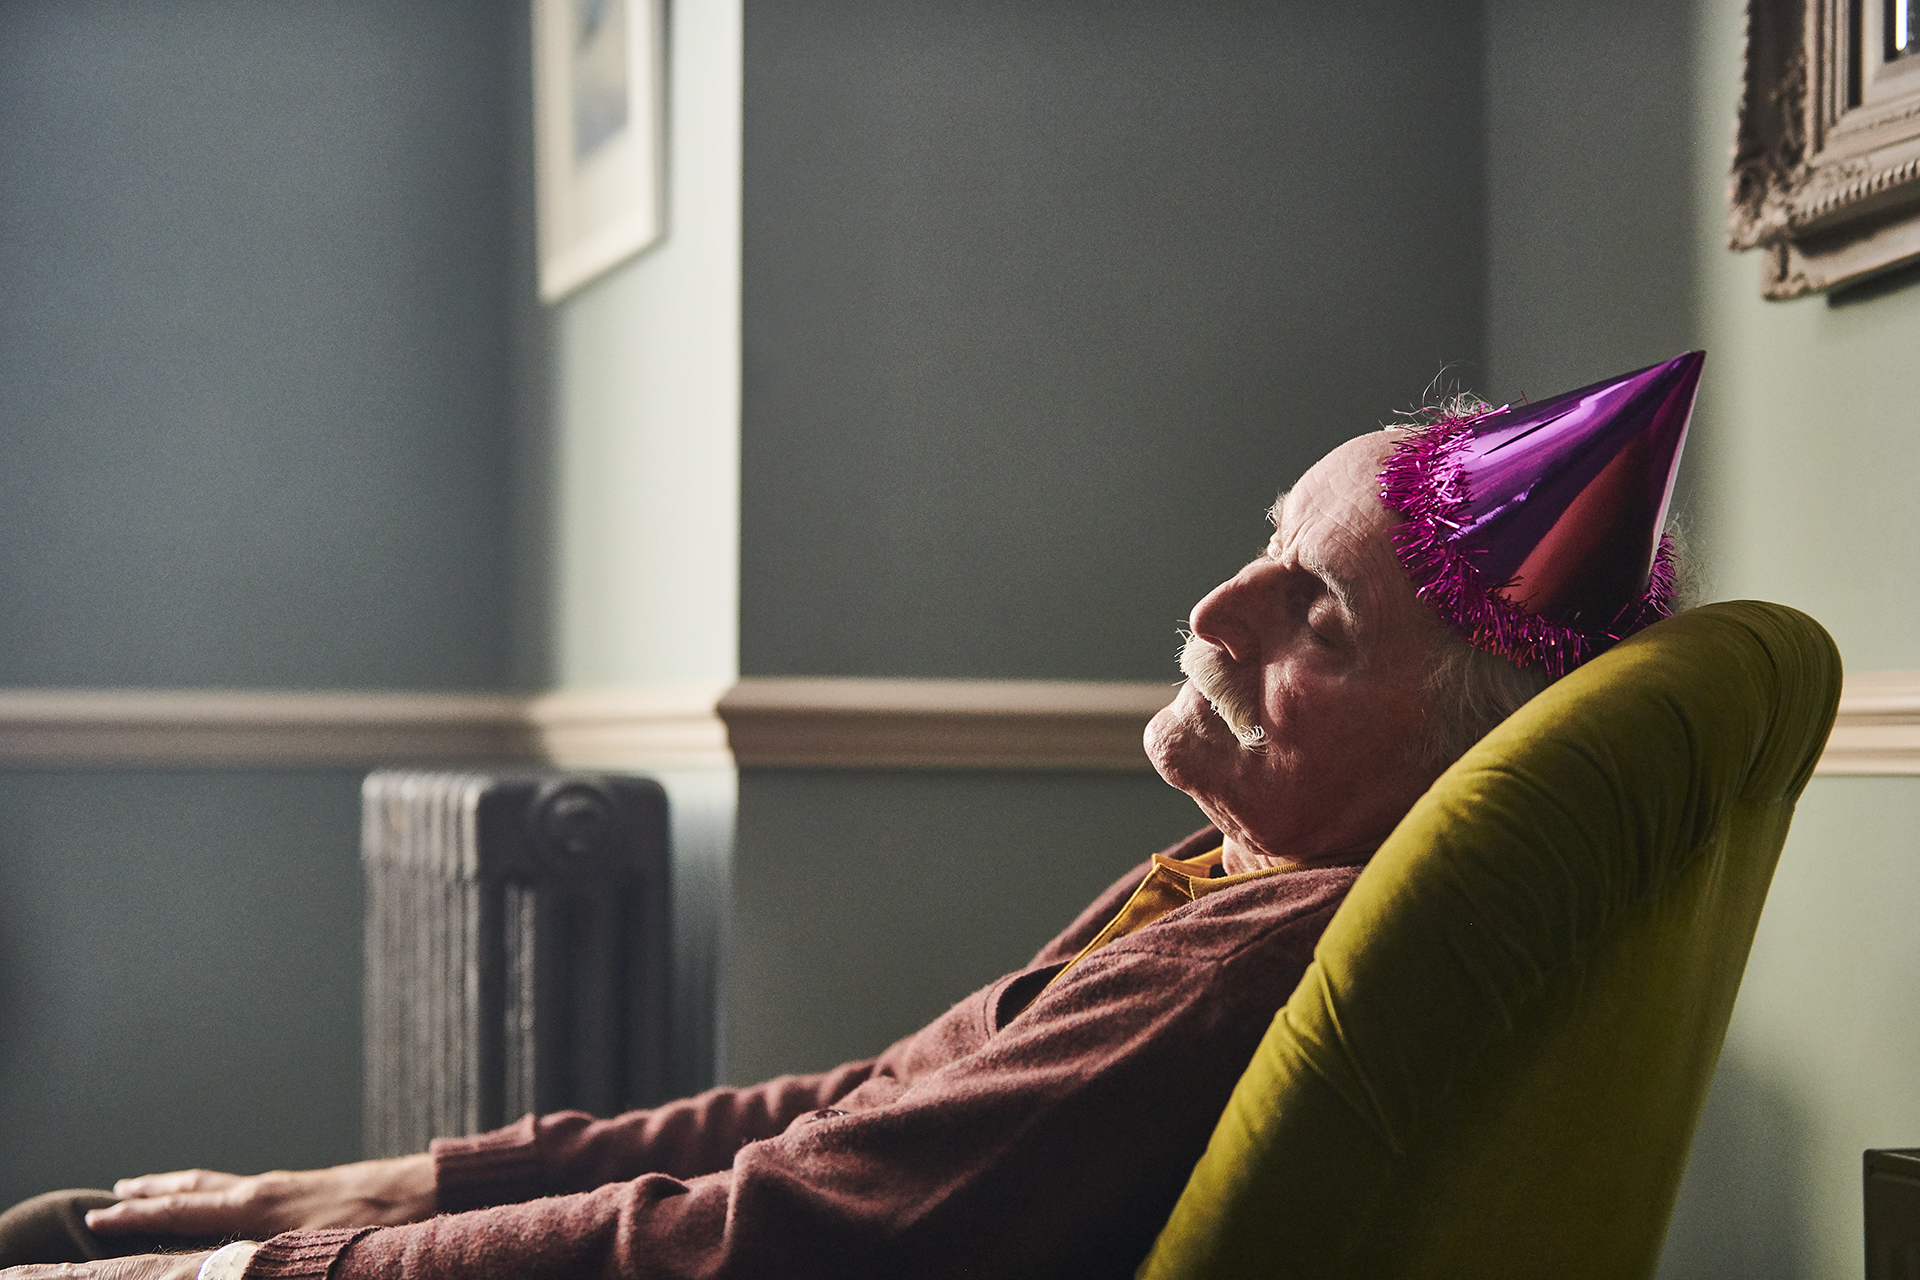 An elderly man having a nap on an armchair